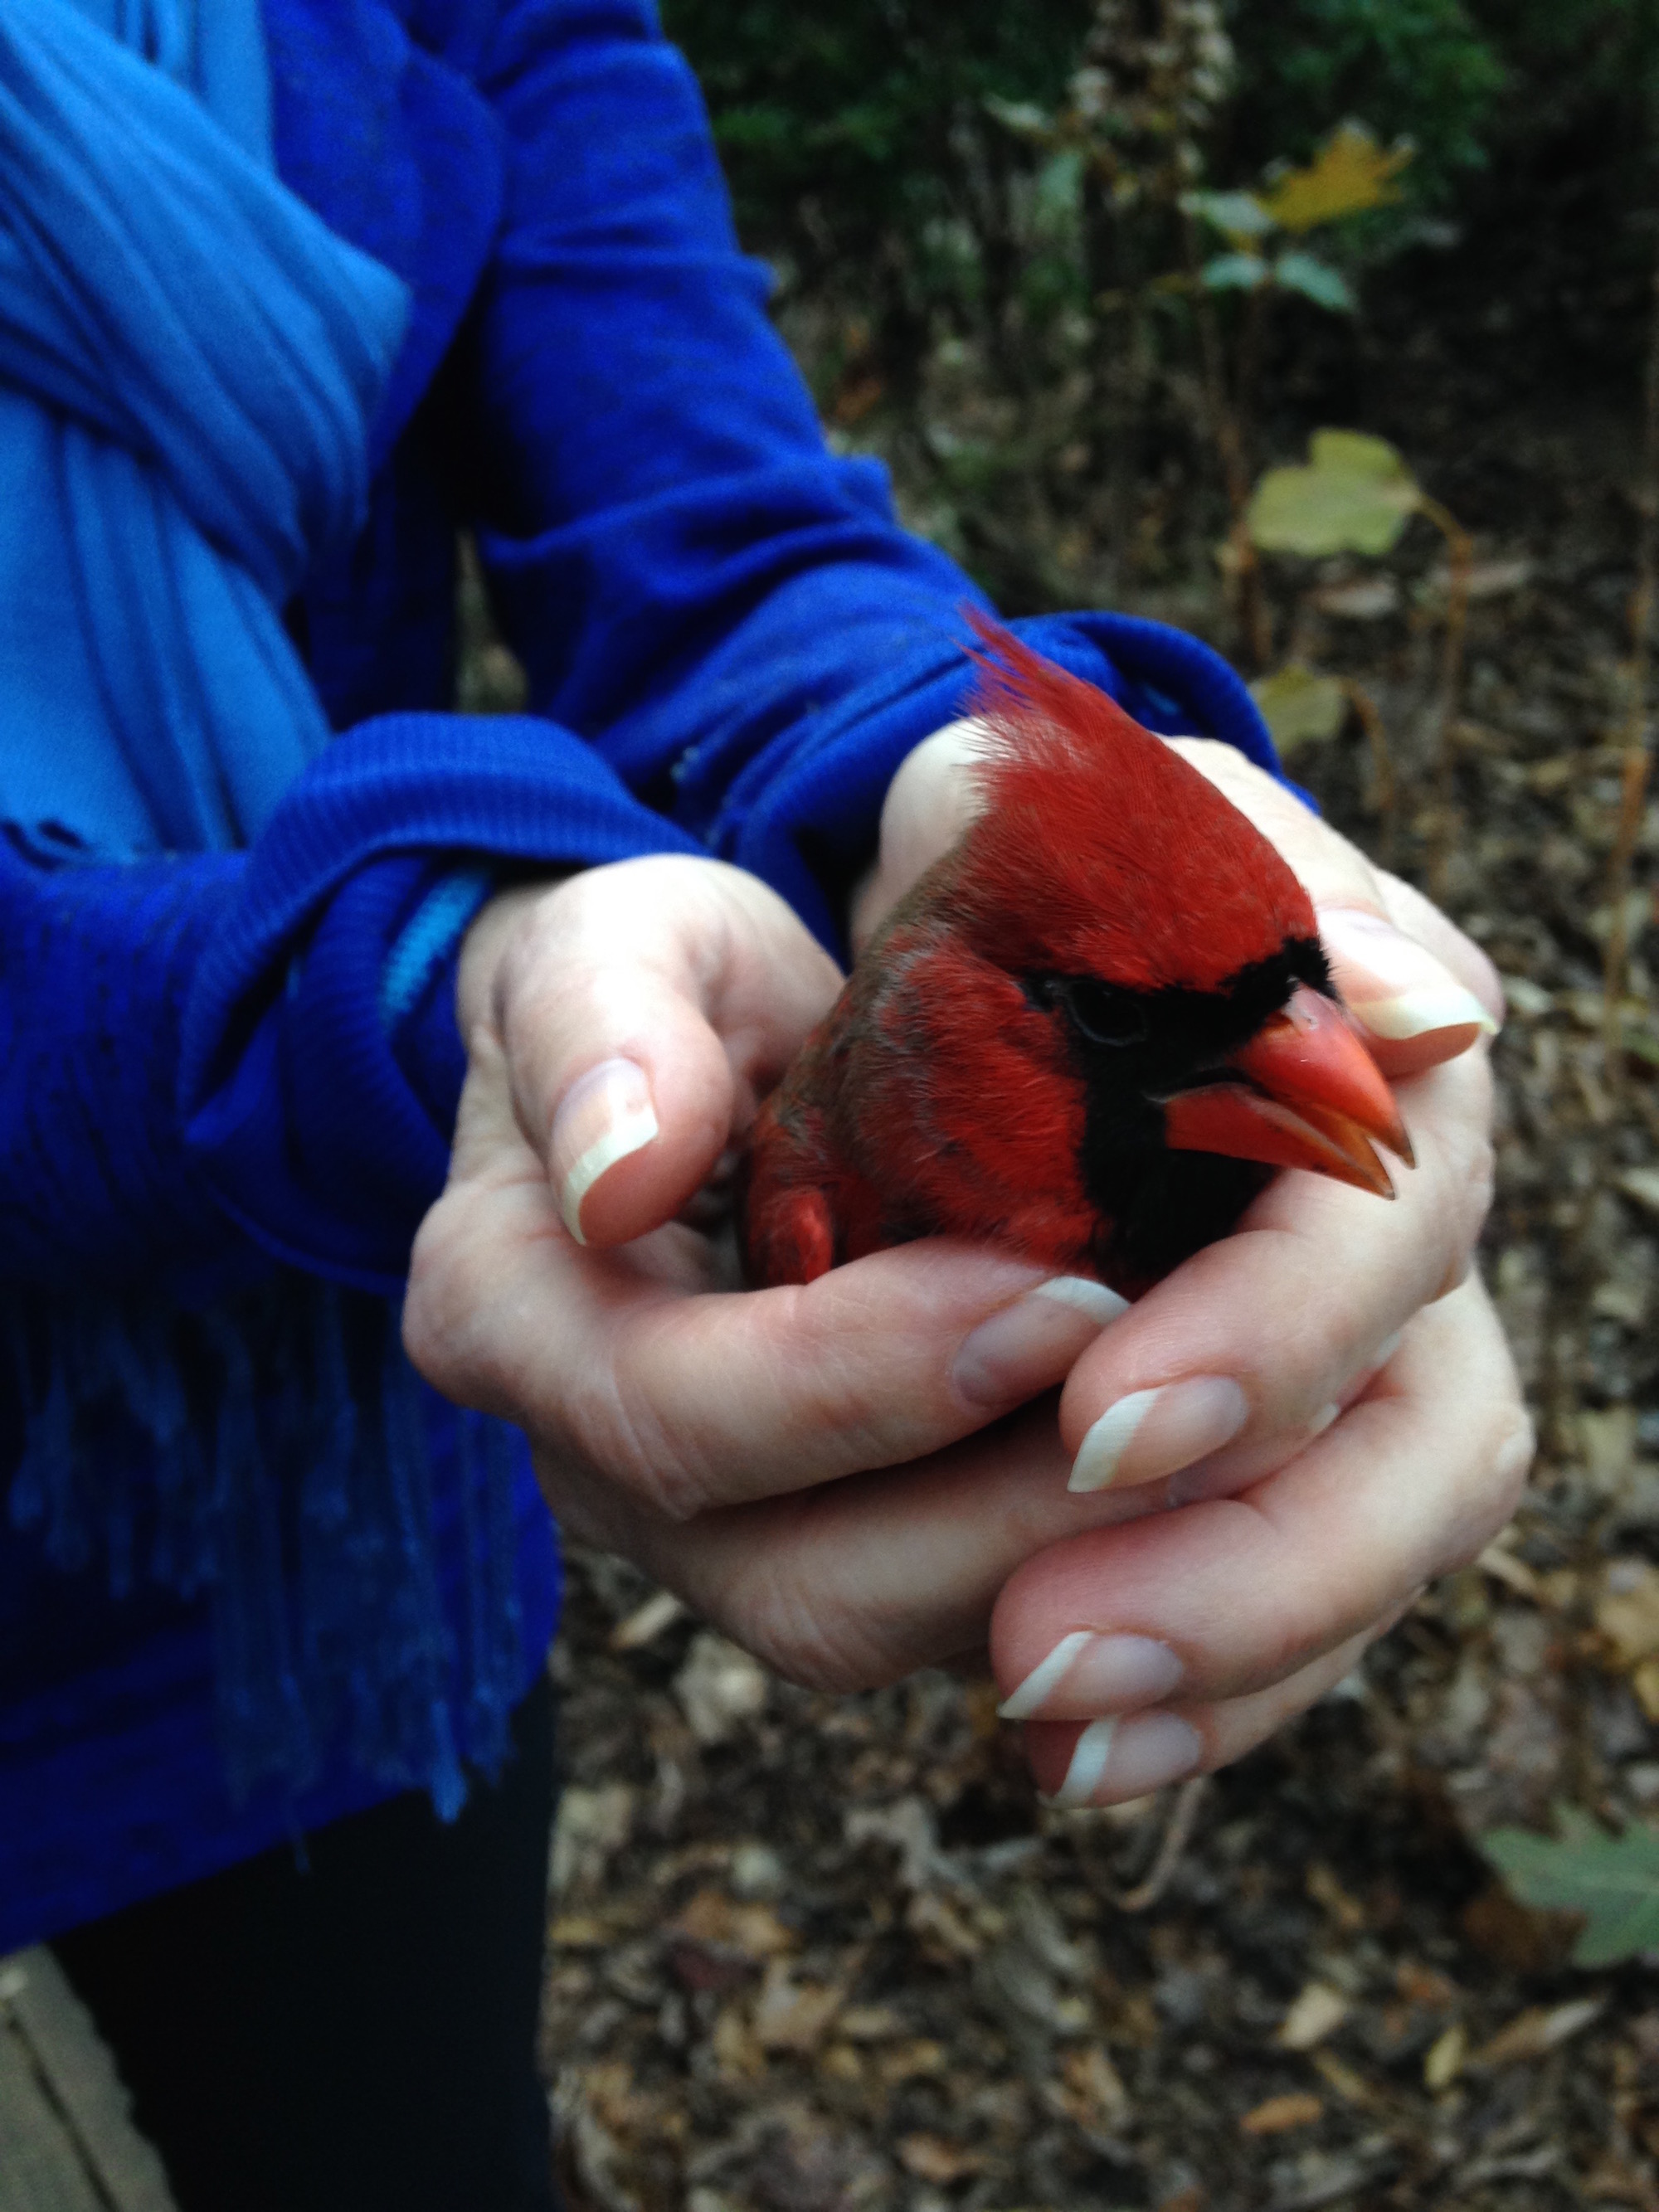 Bird in Hand - cardinal rescue. Keeping him warm and safe from predators while he recover, which he did, though not all do. We've lost a few, so are implementing bird deflector and deterrent measures to try to keep them from flying into our windows. #BirdFlyingIntoWindow #KeepBirdsFromHittingWindows #BirdRescue #CardinalBirdInHand